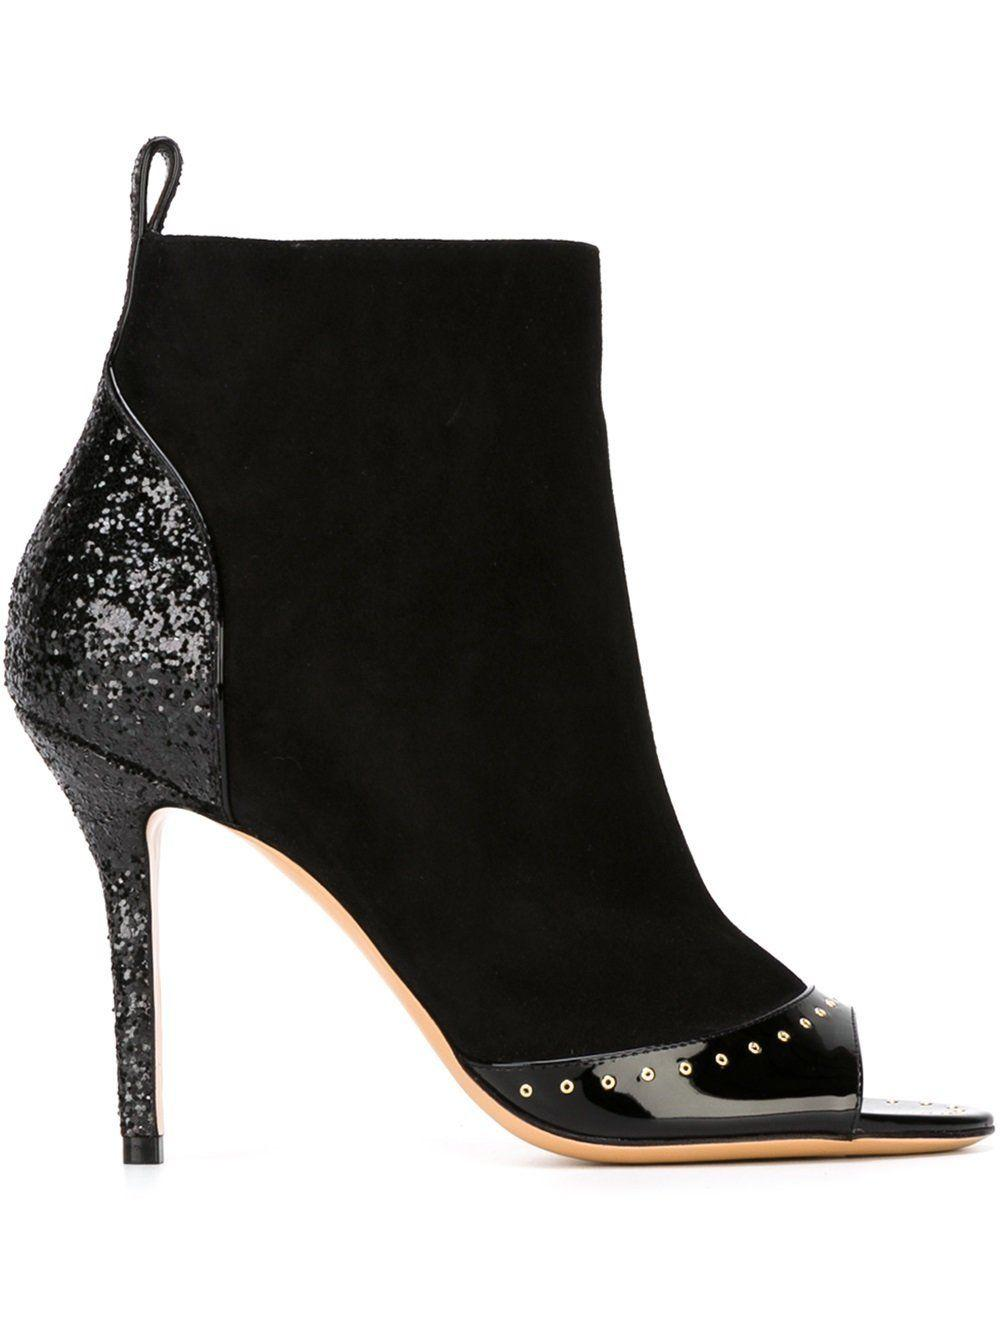 $990 Salvatore Ferragamo LISKIA Black Suede Ankle Boot Peep Toe Pump Booties 8